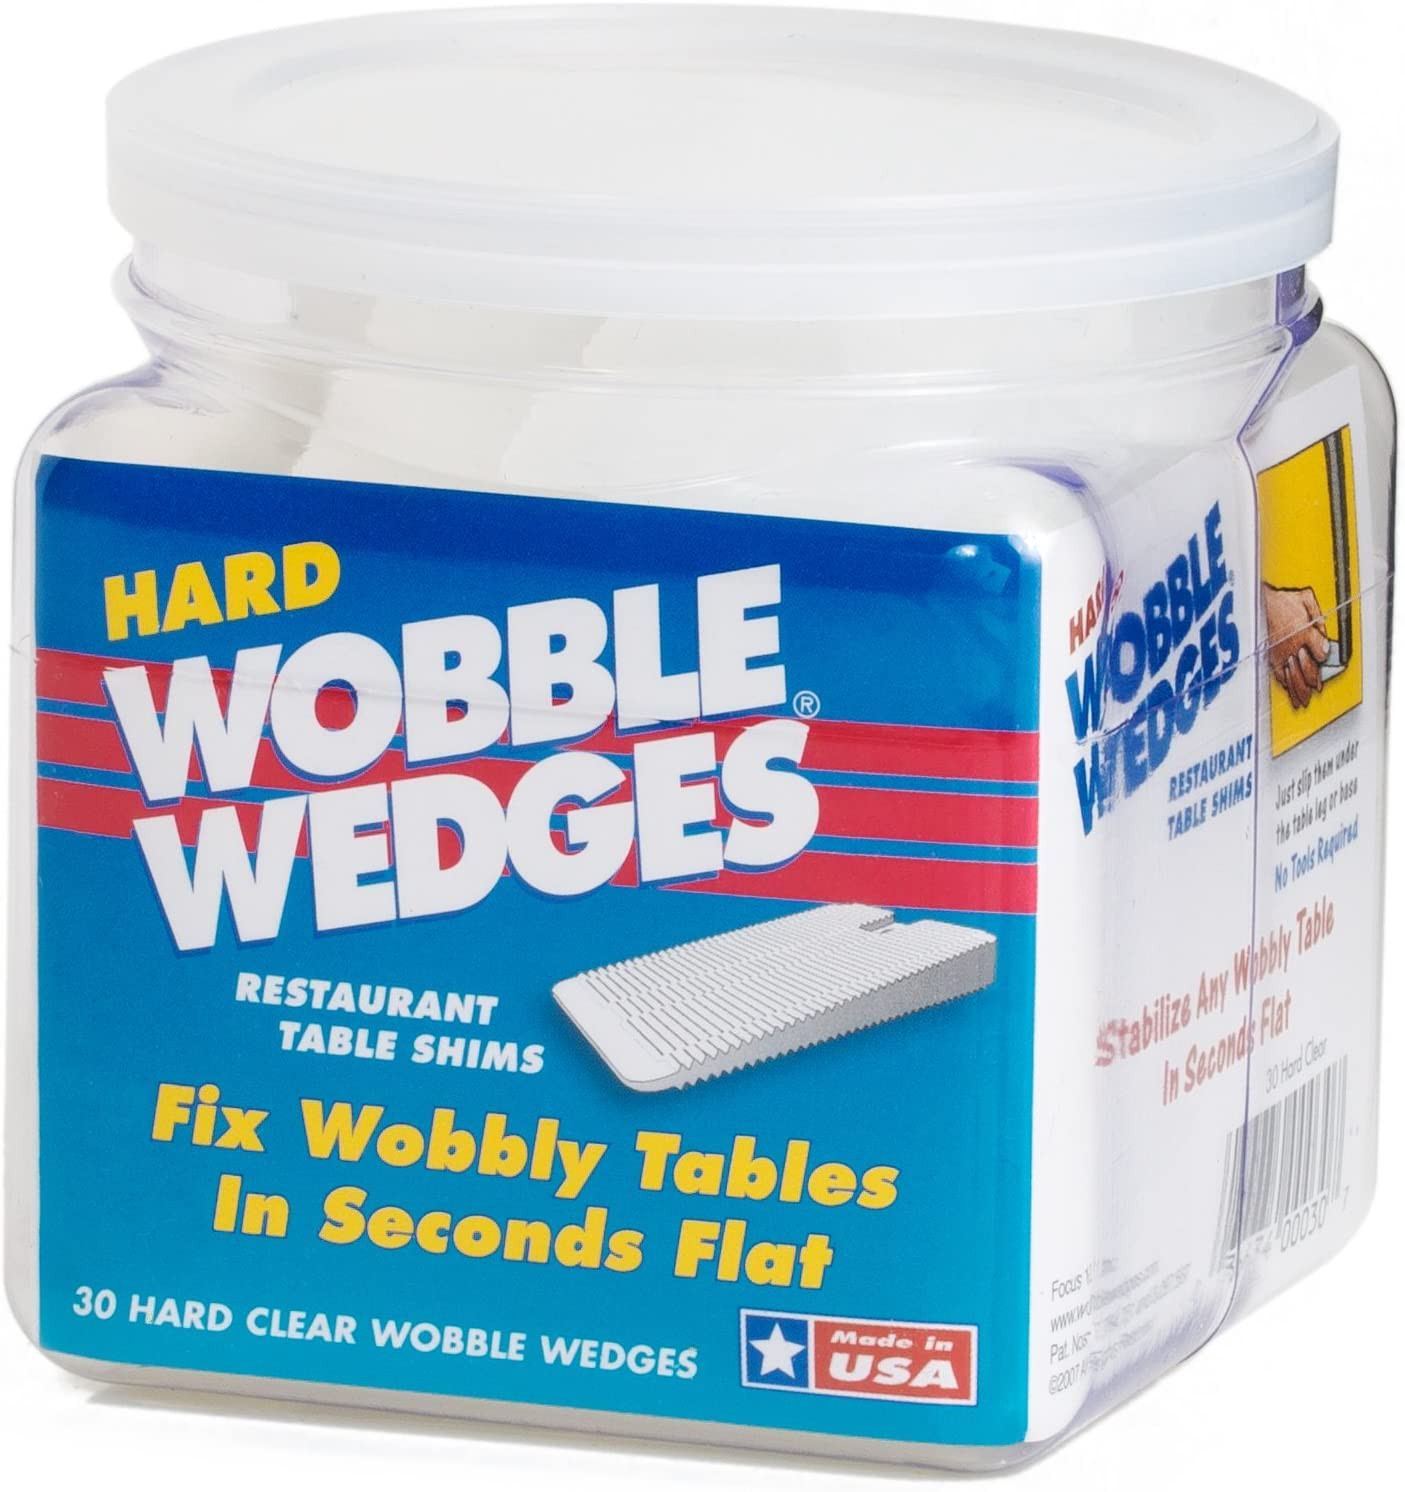 Wobble Wedge - Hard Clear - Restaurant Table Shims - 30 Piece Jar